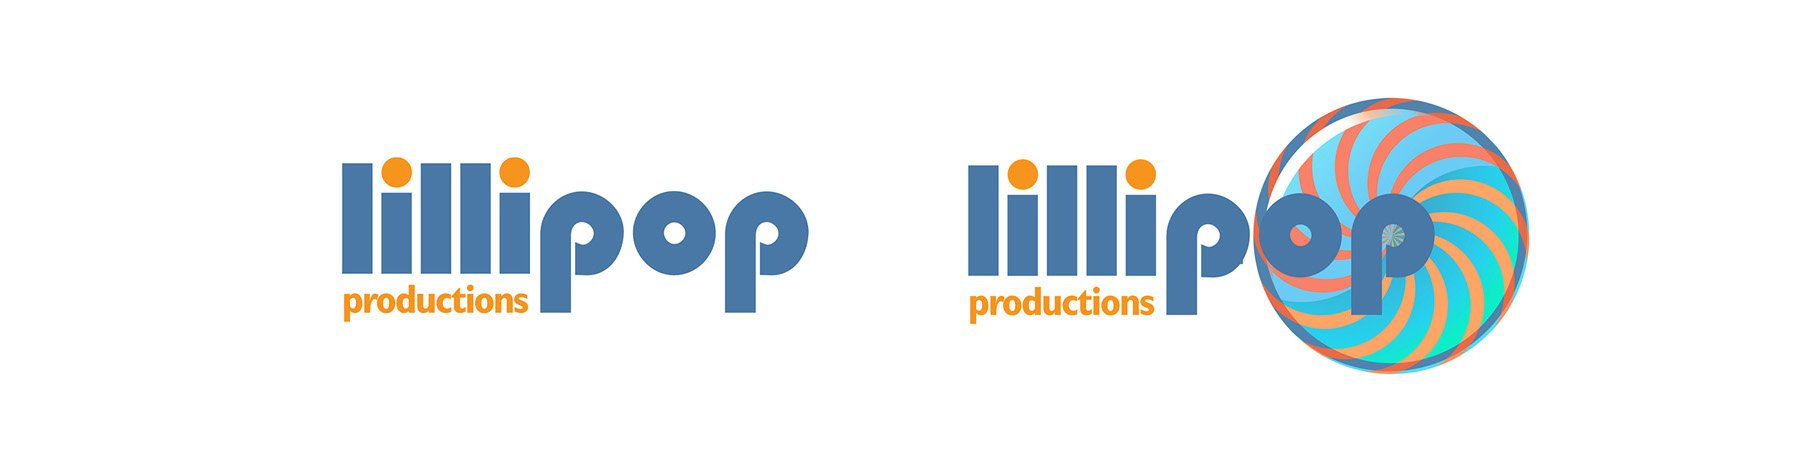 citywork designed entertainment company logos